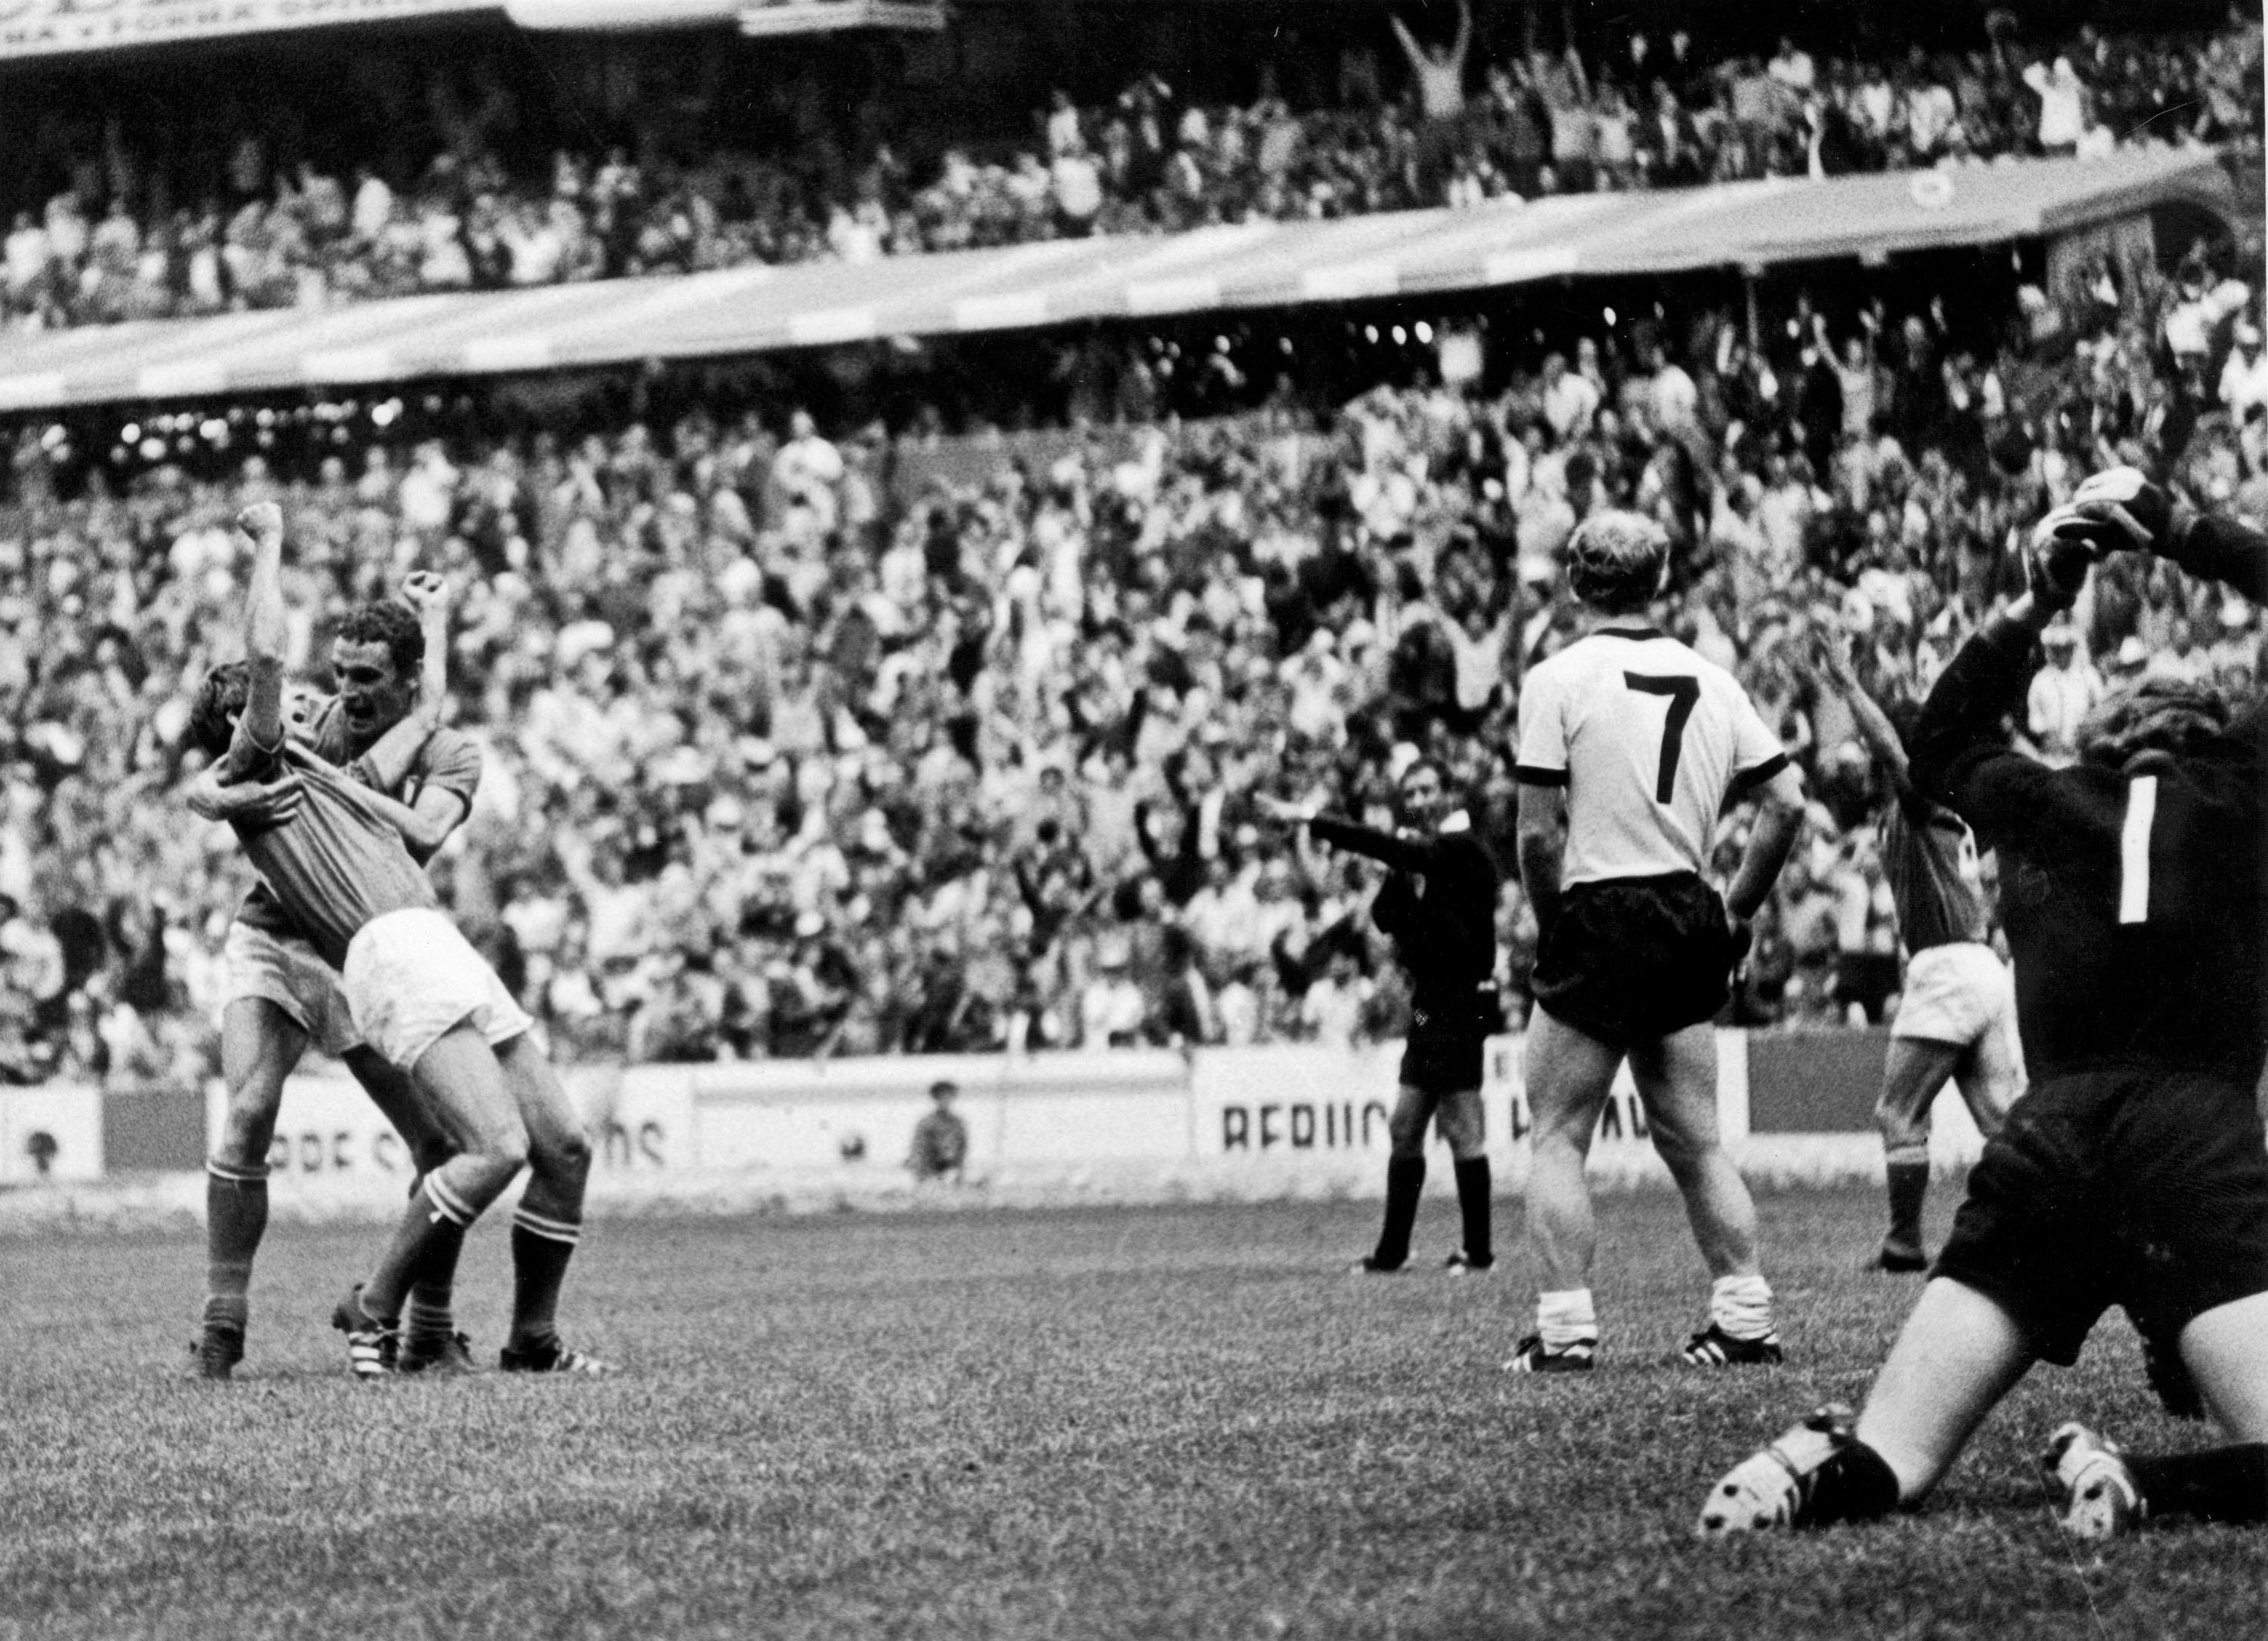 Italy triumphs over Germany in the nail-biting 1970 FIFA World Cup ...